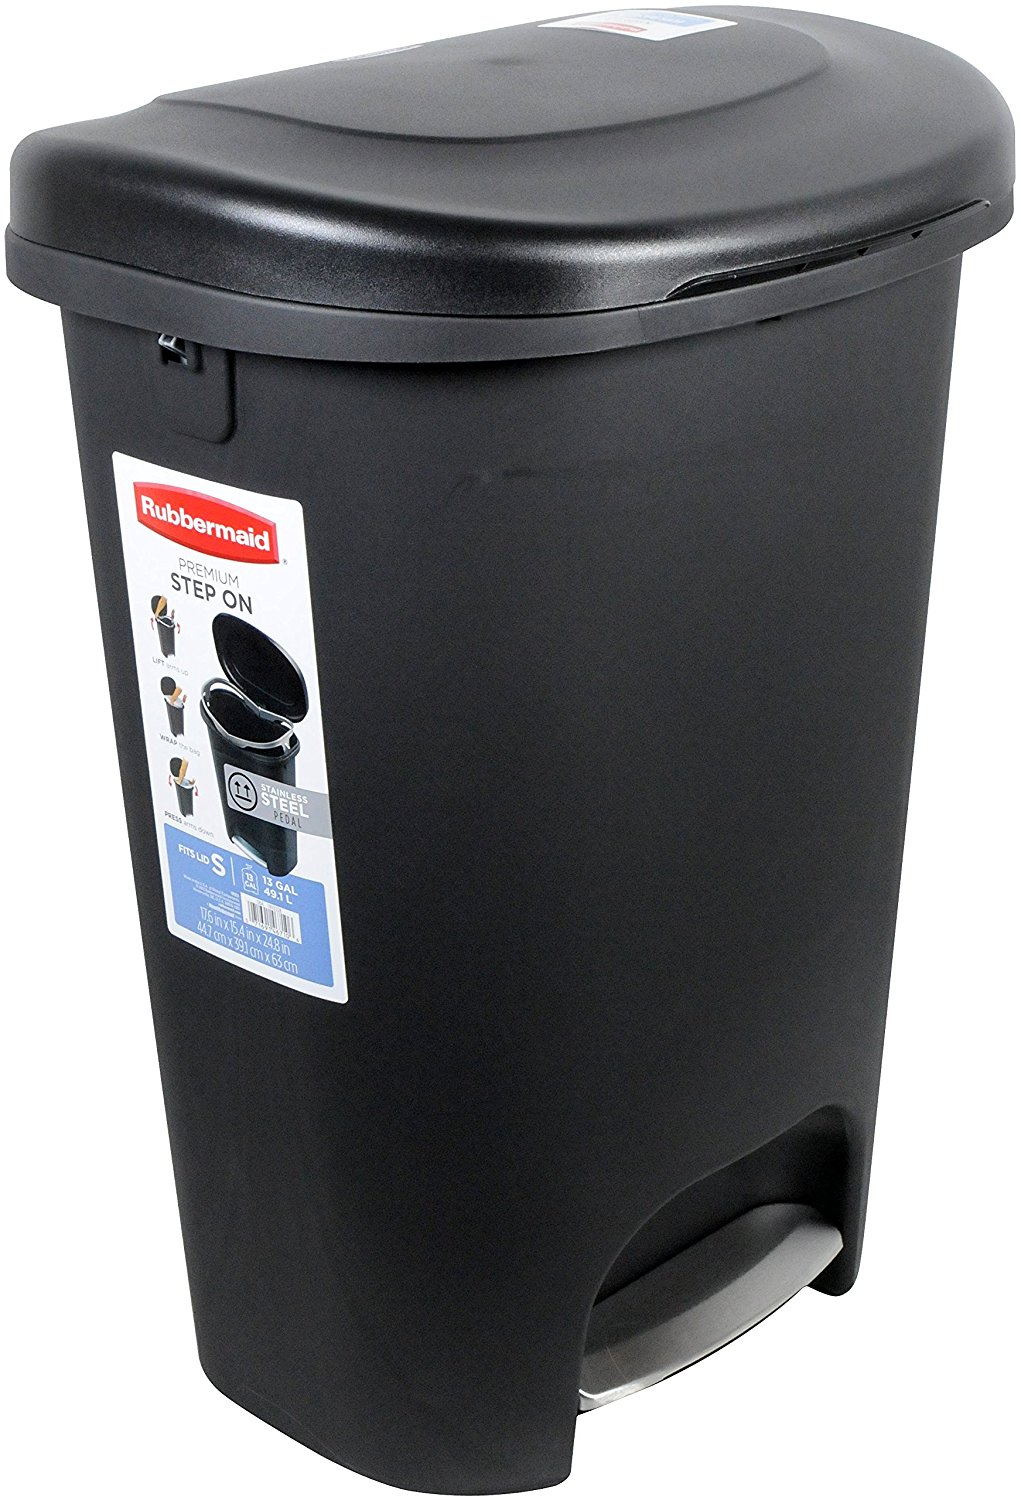 Rubbermaid Step-On Trash Can with Metal Accent Pedal